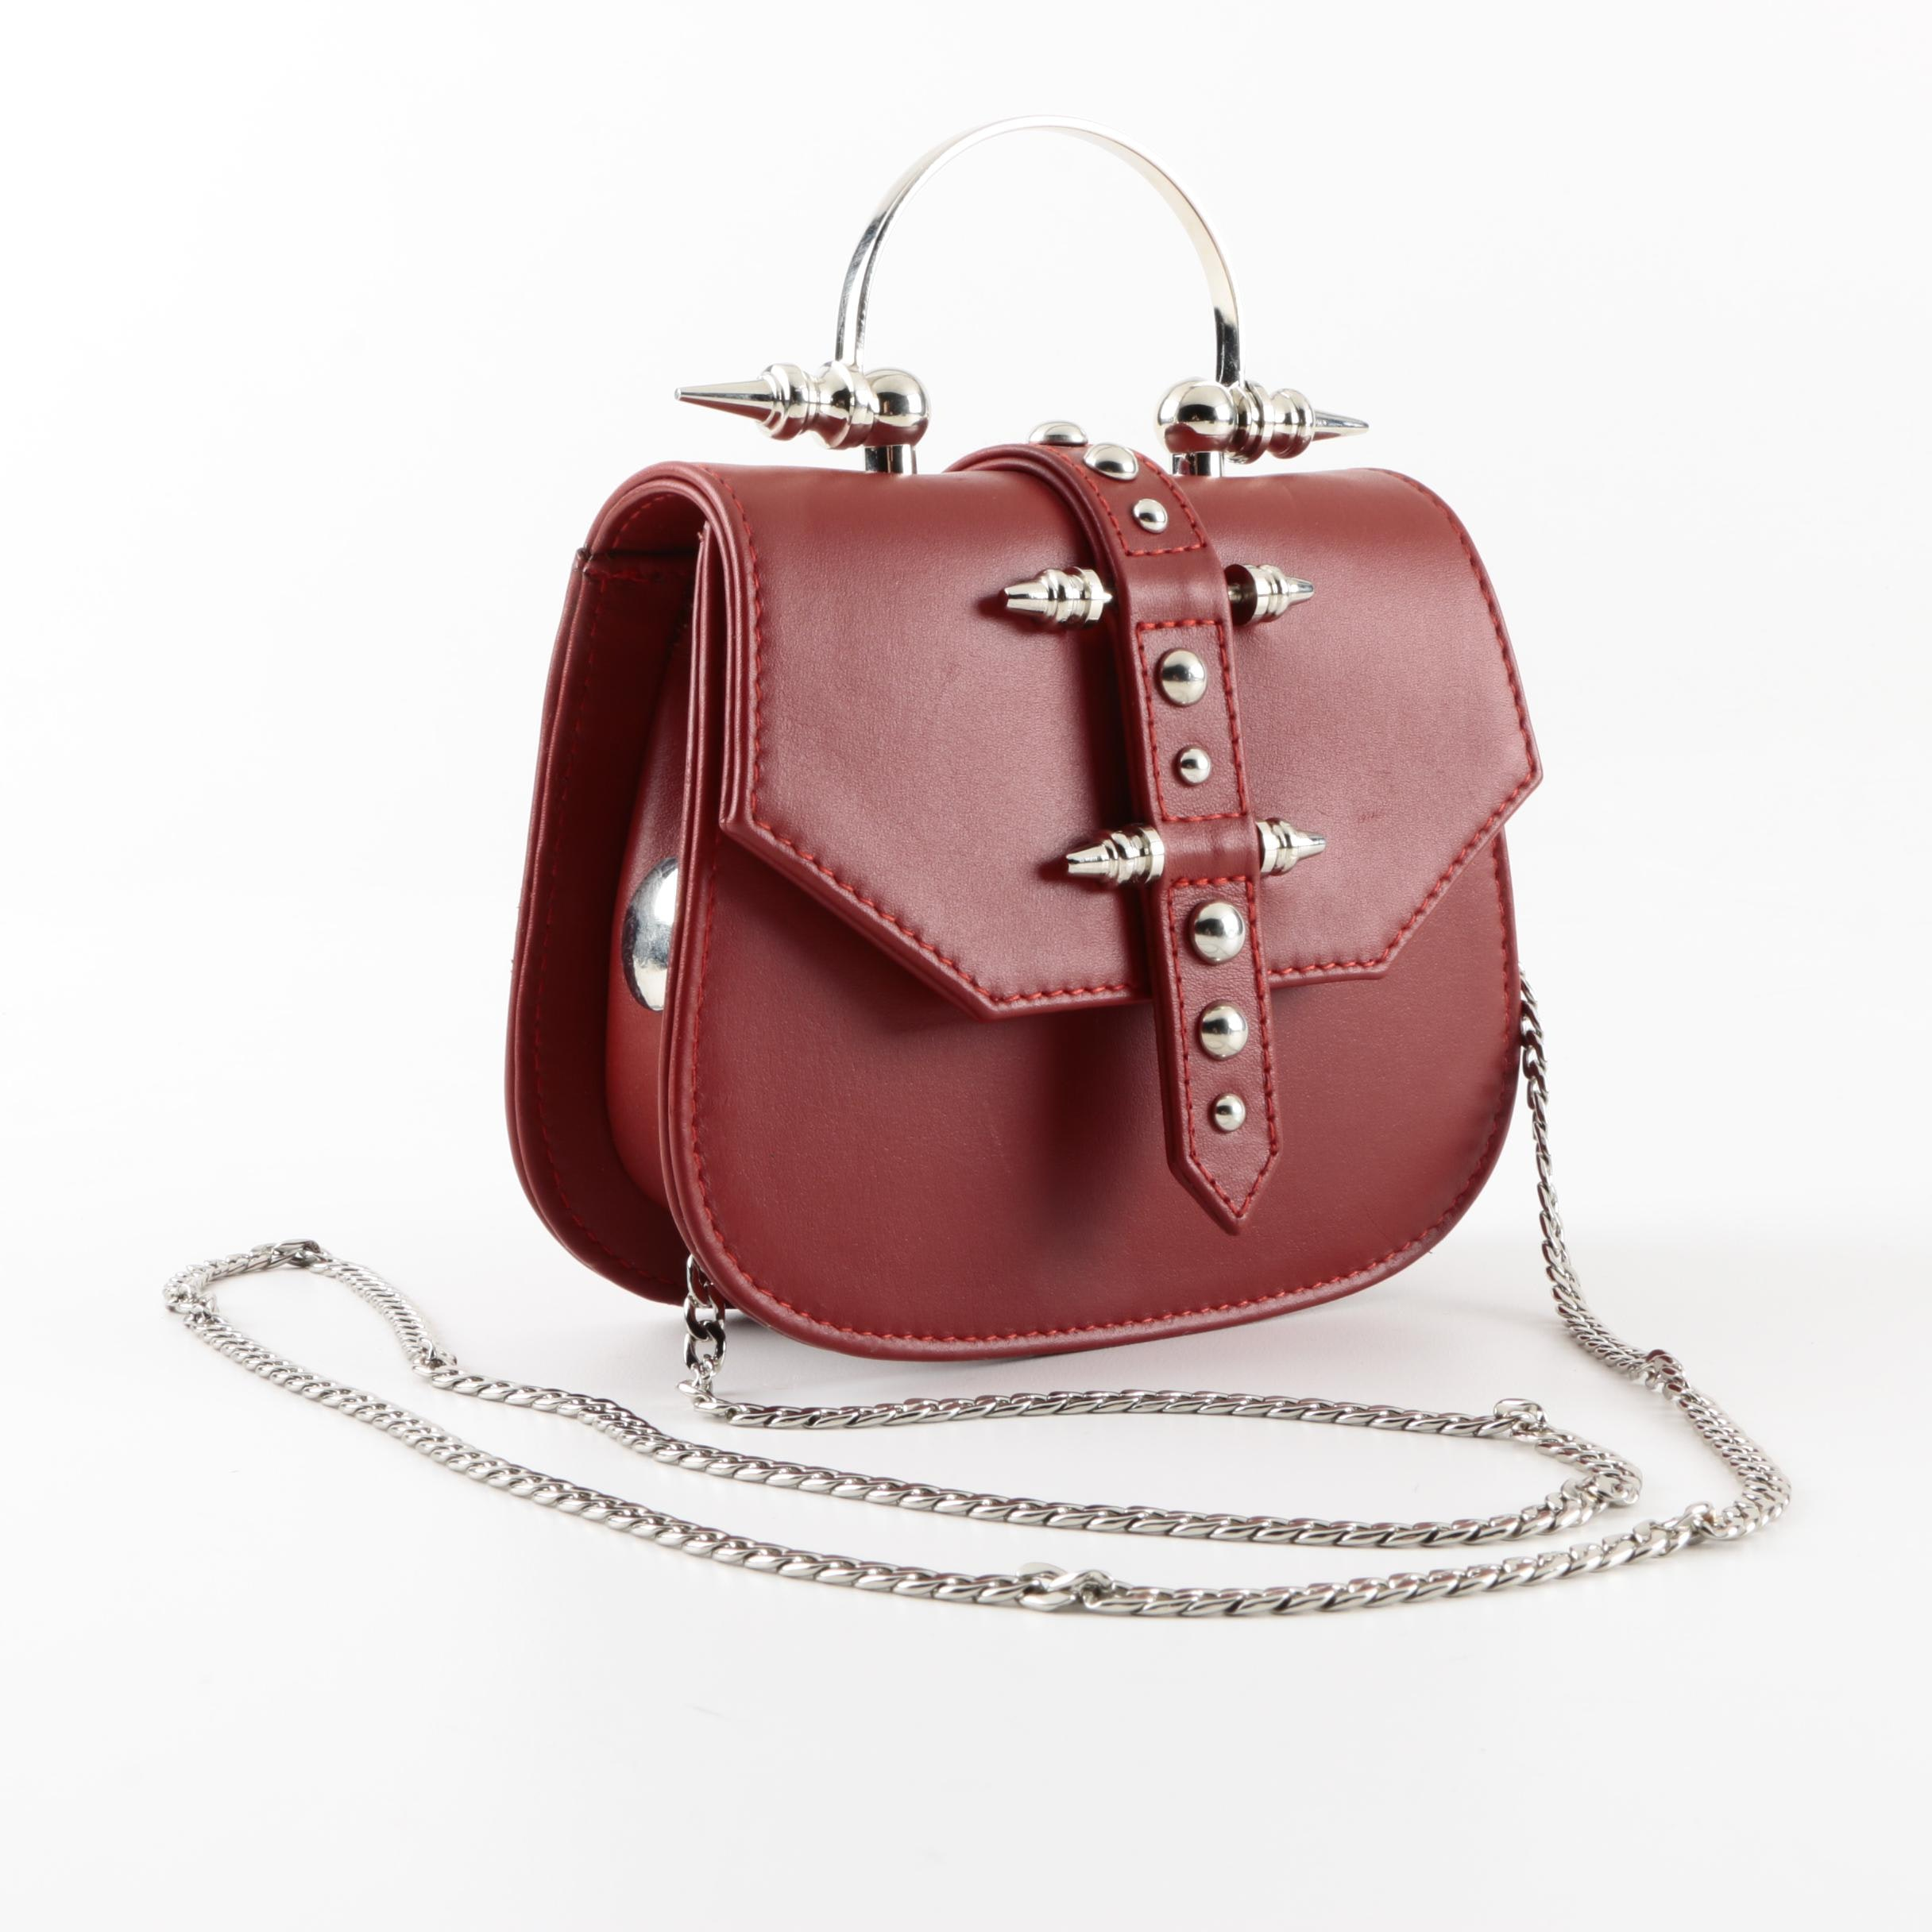 OKHTEIN Mini Studded Red Leather Crossbody Handbag